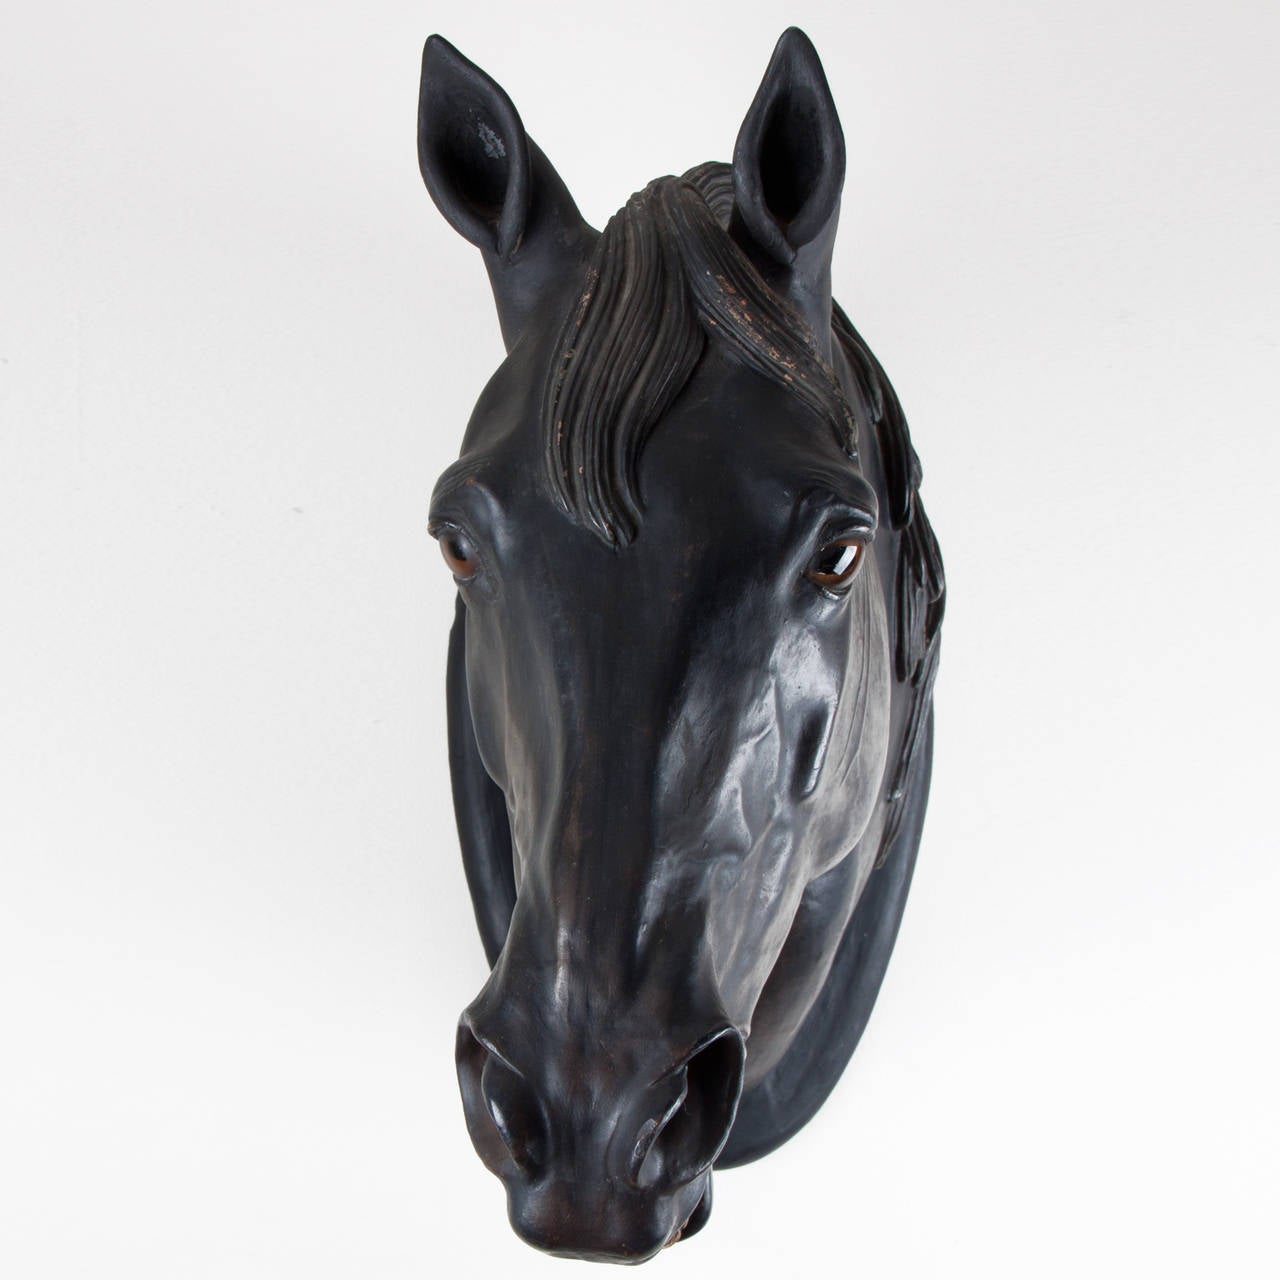 19th Century Patinated Terracotta Horse Head In Good Condition For Sale In Esbeek, NL